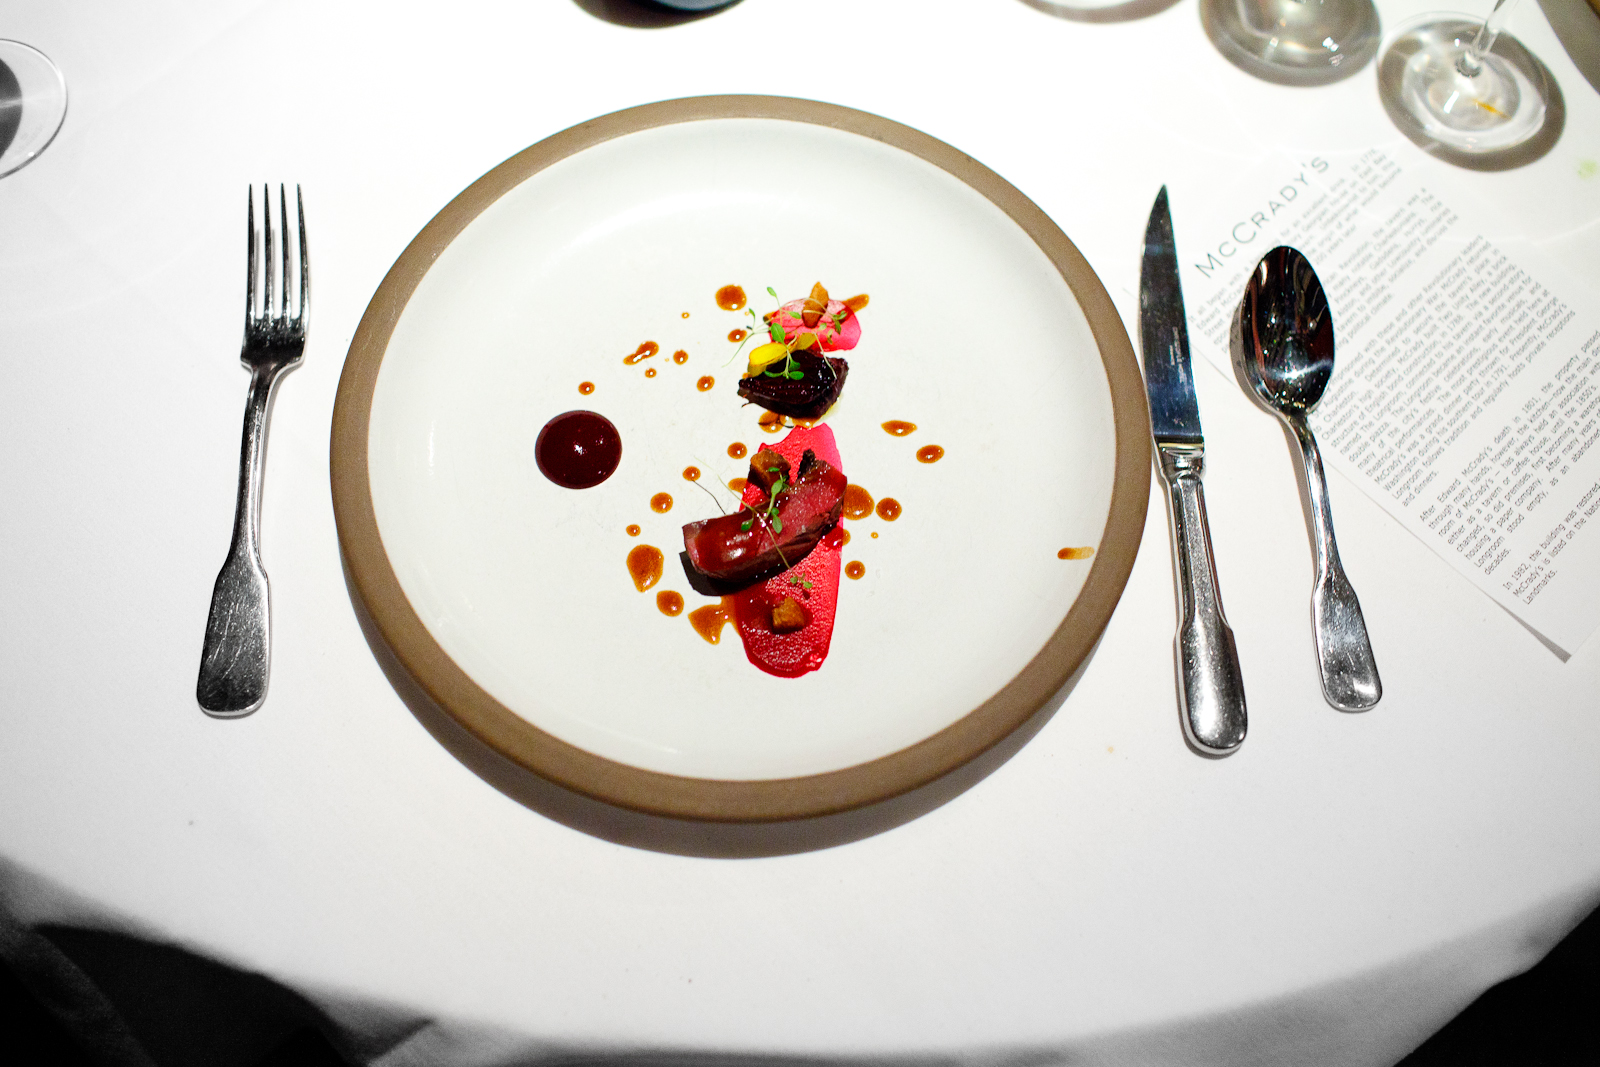 """7th Course: Aged """"shot by a hunter wild"""" wood pigeon cooked in hay, beets buried in embers, huckleberries"""